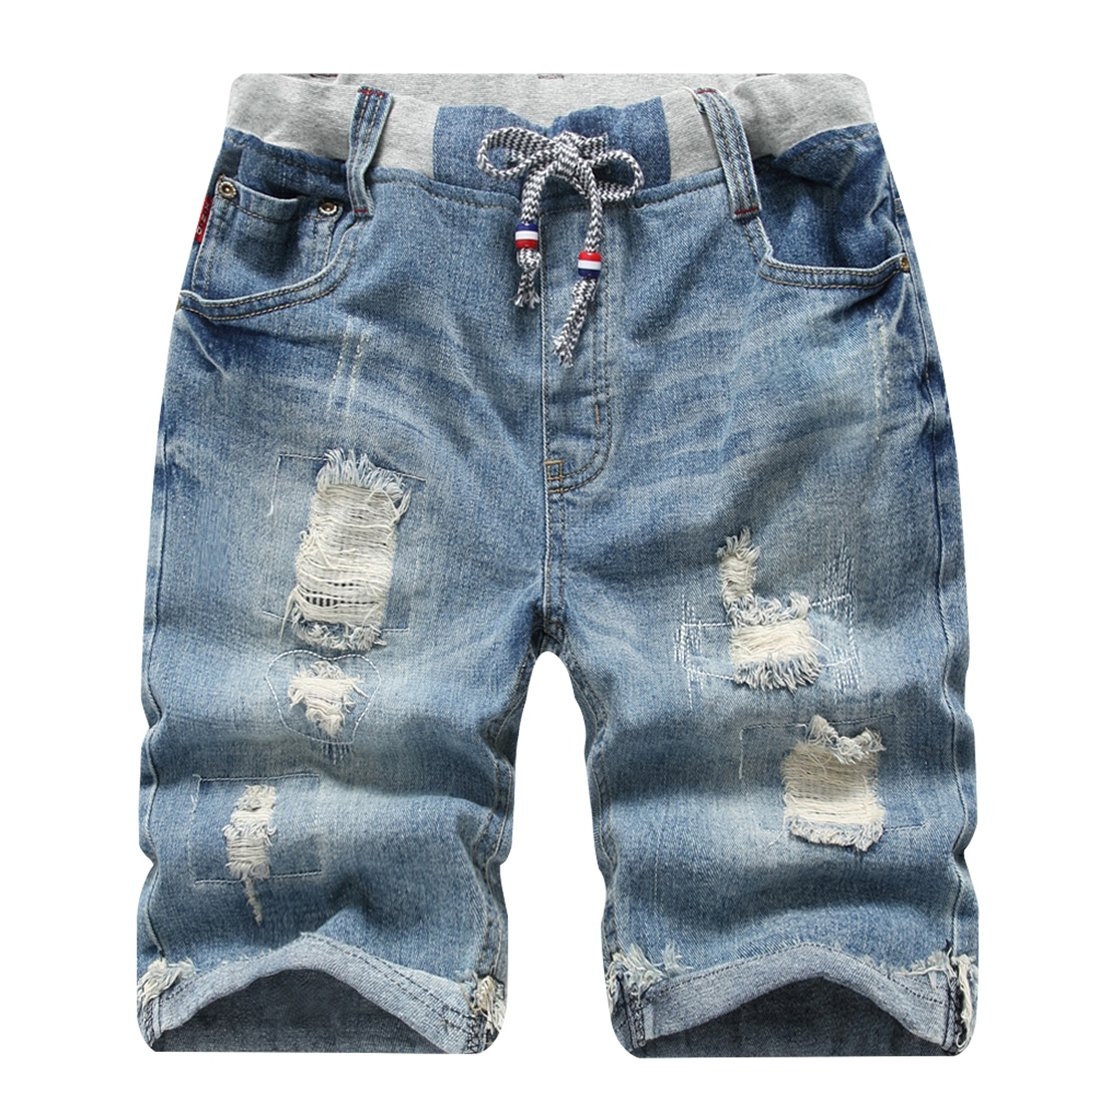 LOKTARC Big Boys Ripped Pull-On Jeans Shorts Distressed Denim 11-12T